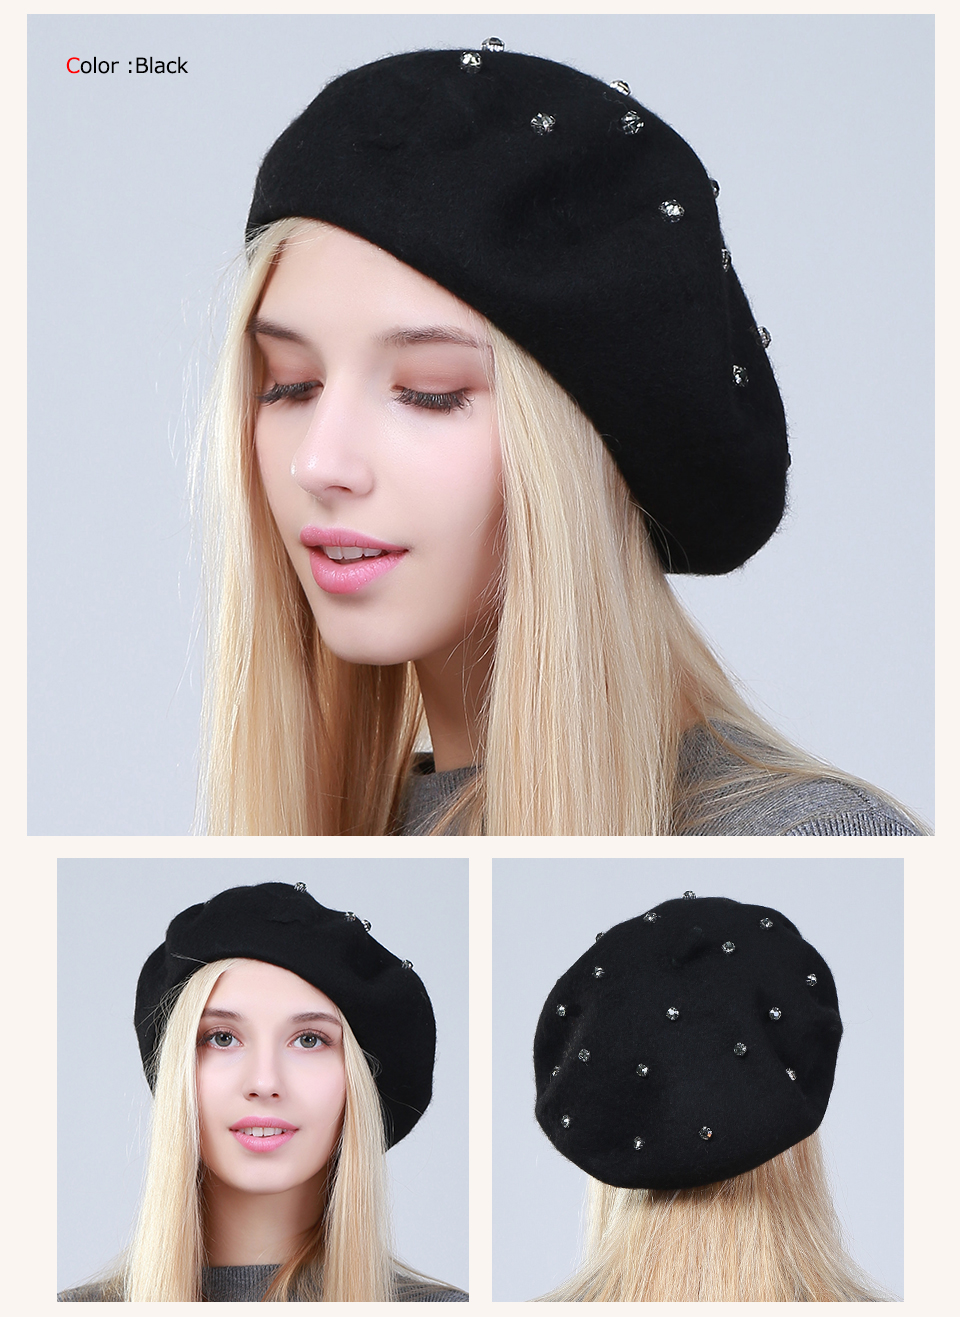 a0f20ad268862 Product Name Geebro Women s Beret Hat Fashion Solid Color Wool Knitted  Berets With Rhinestones Ladies French Artist Beanie Beret Hat GS104